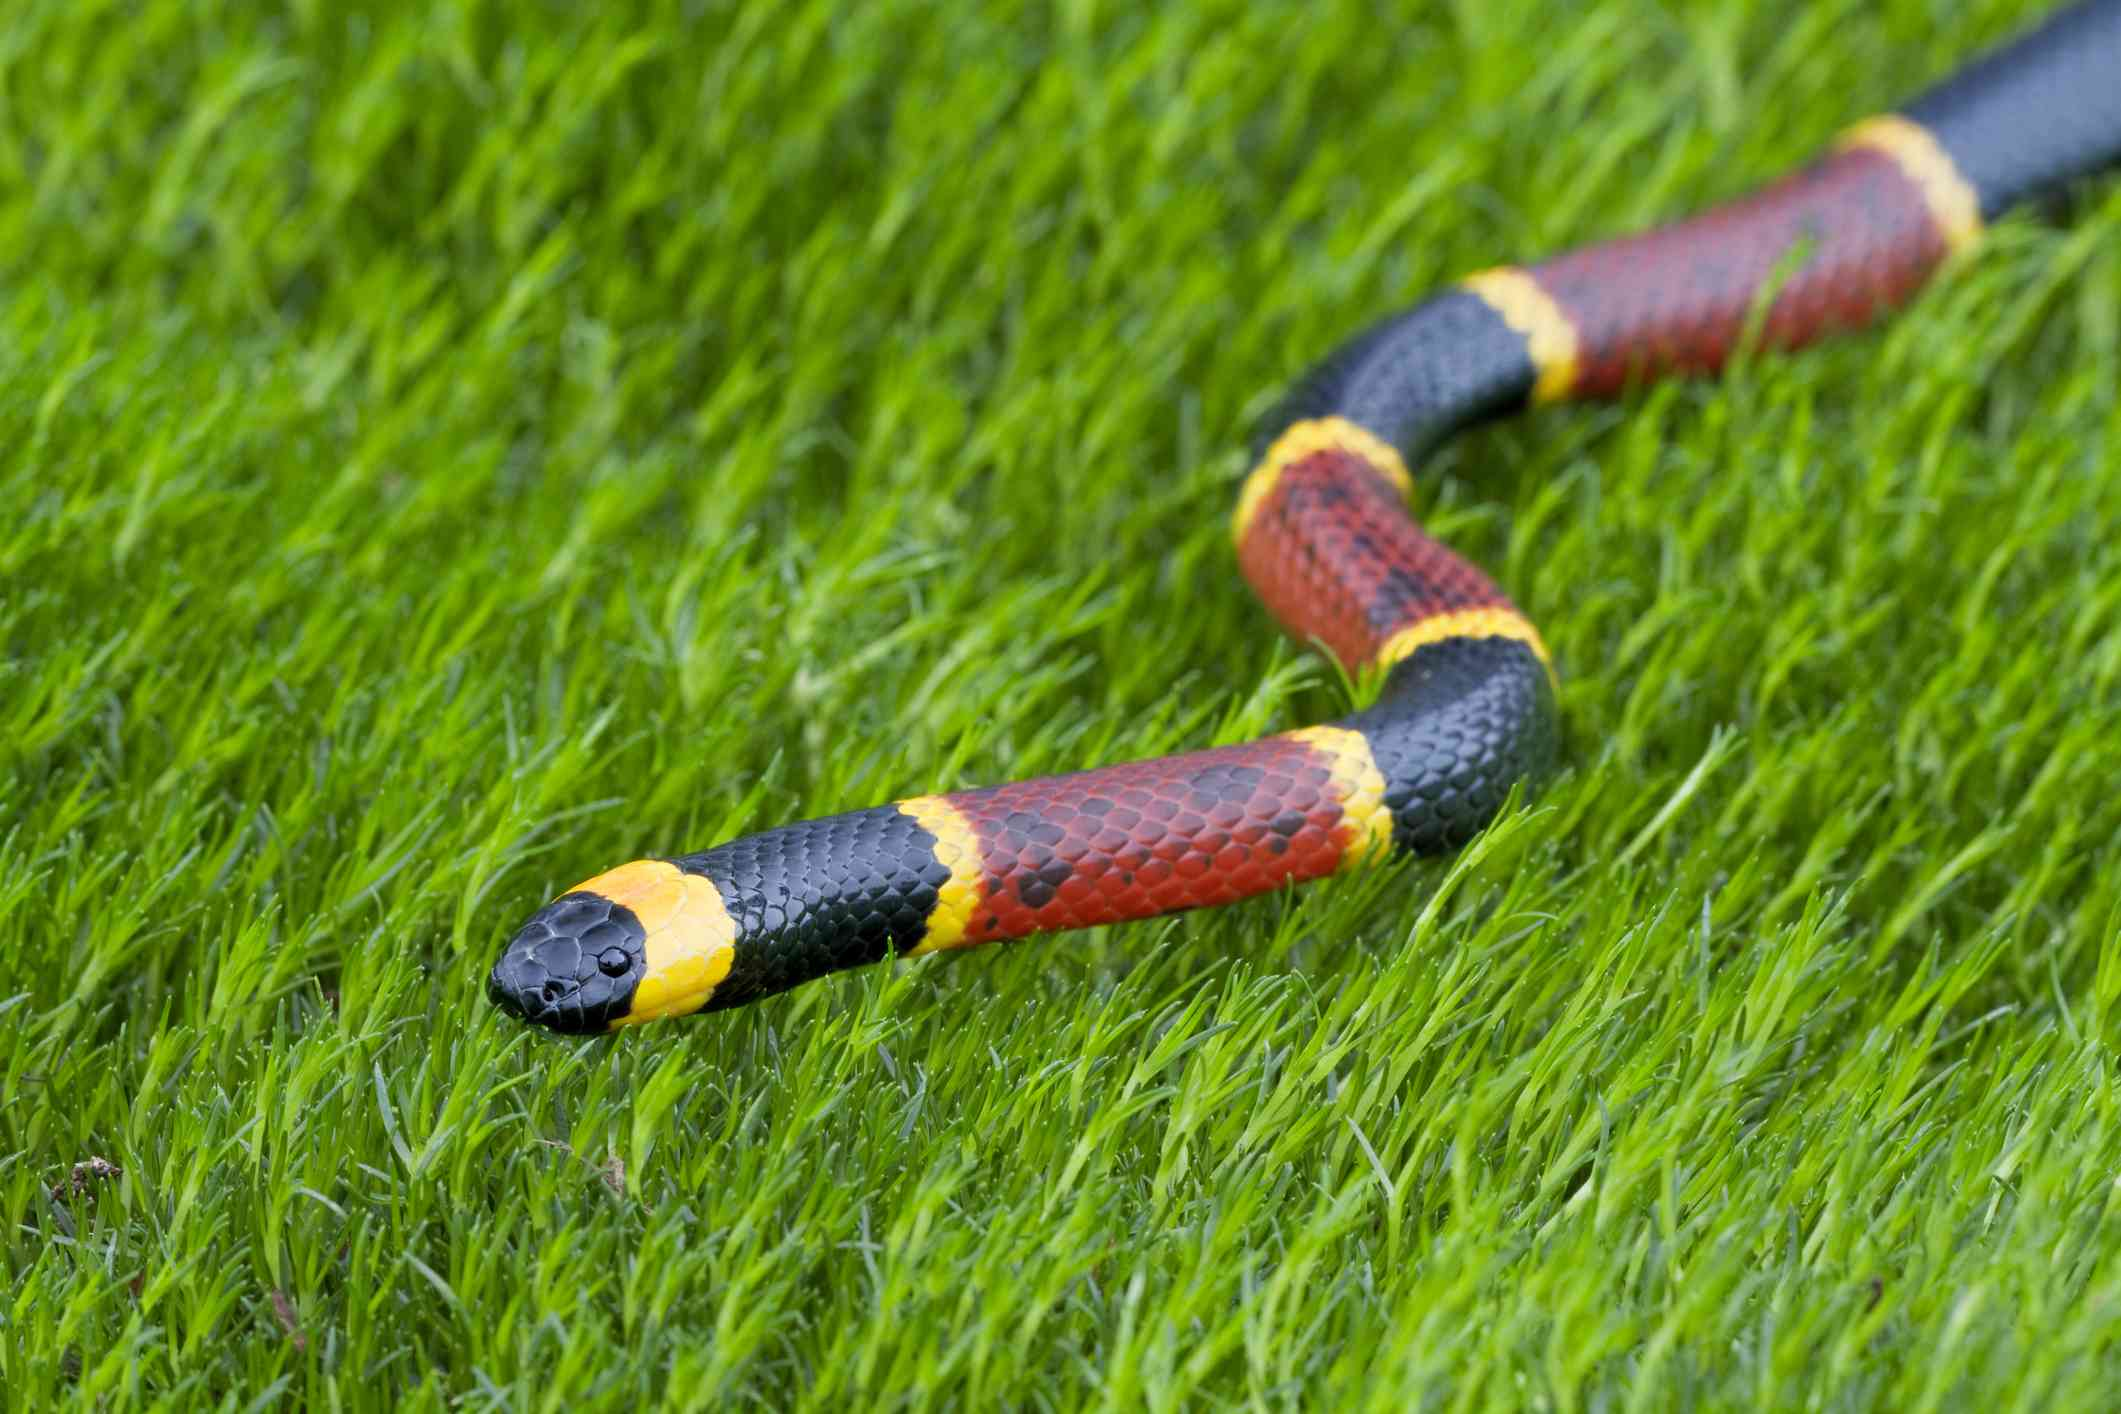 Eastern coral snake in grass